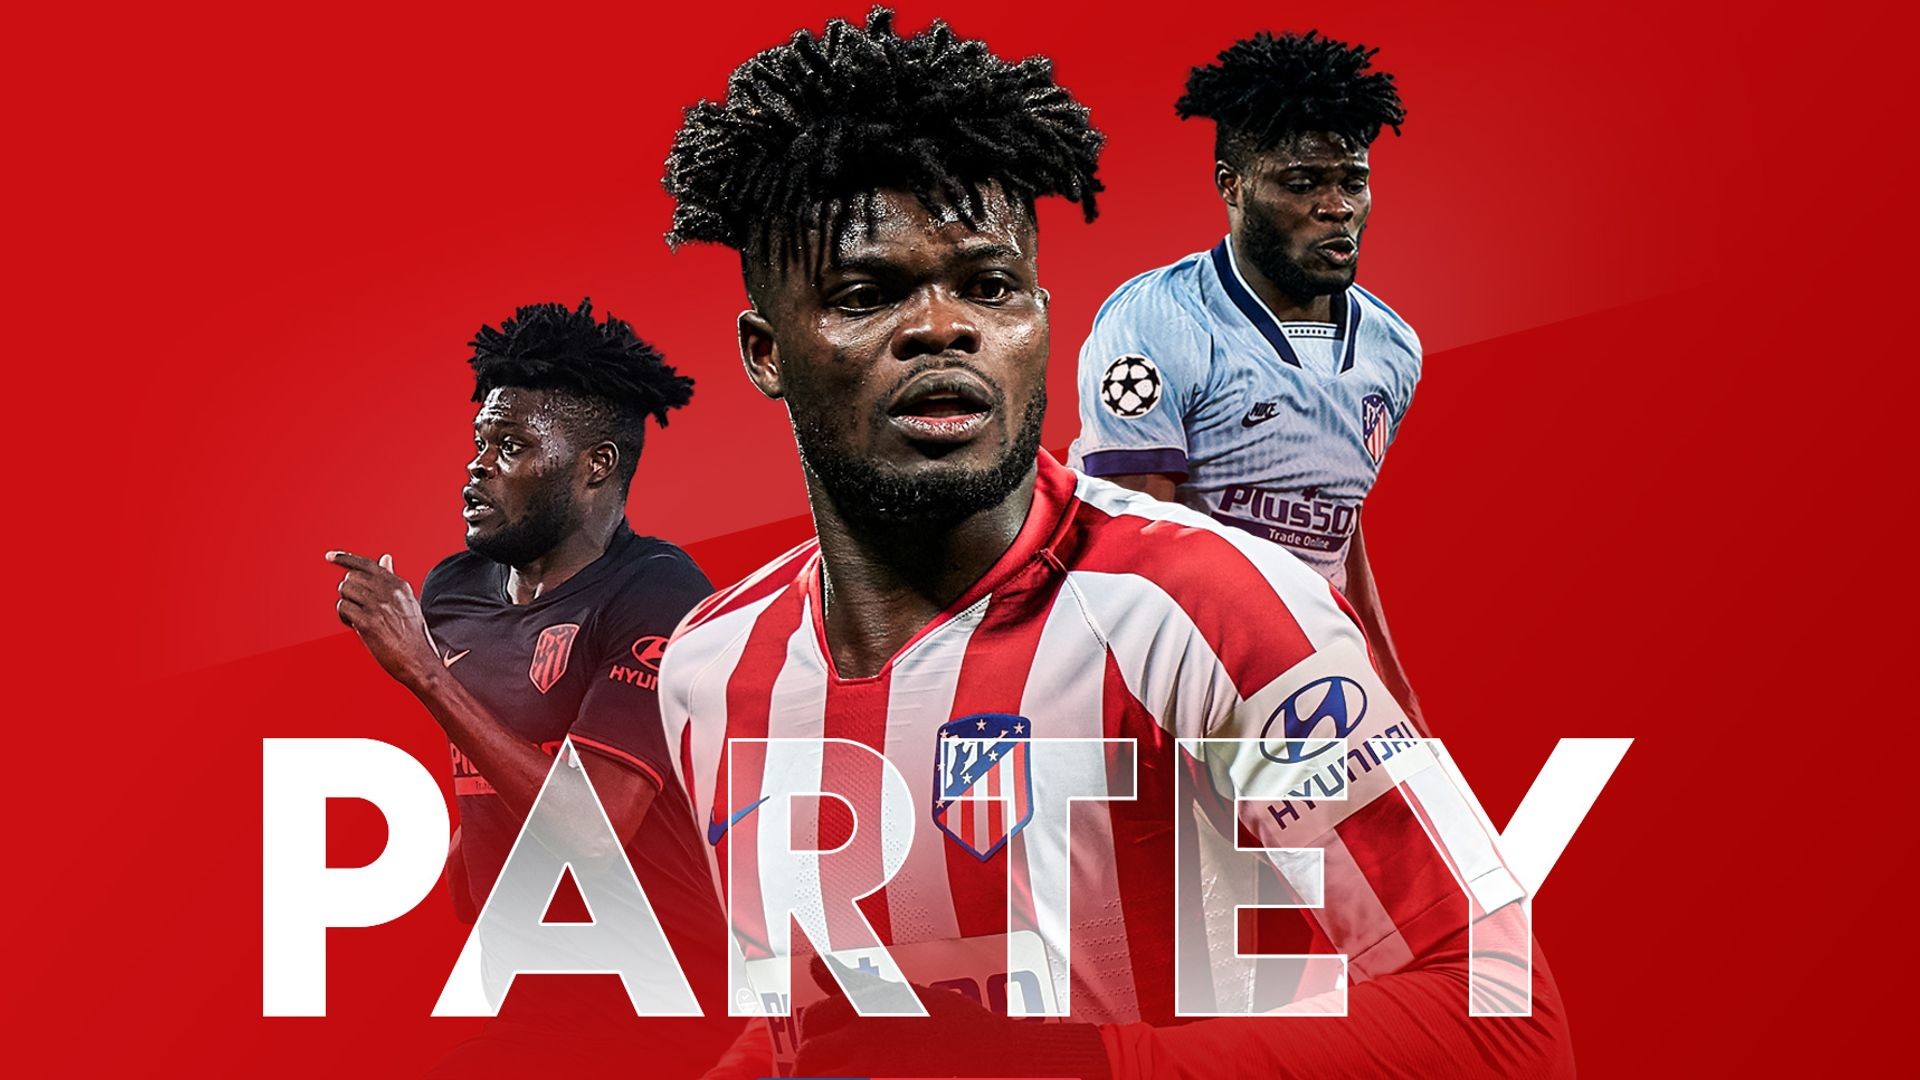 Partey: The Atletico Madrid man in demand